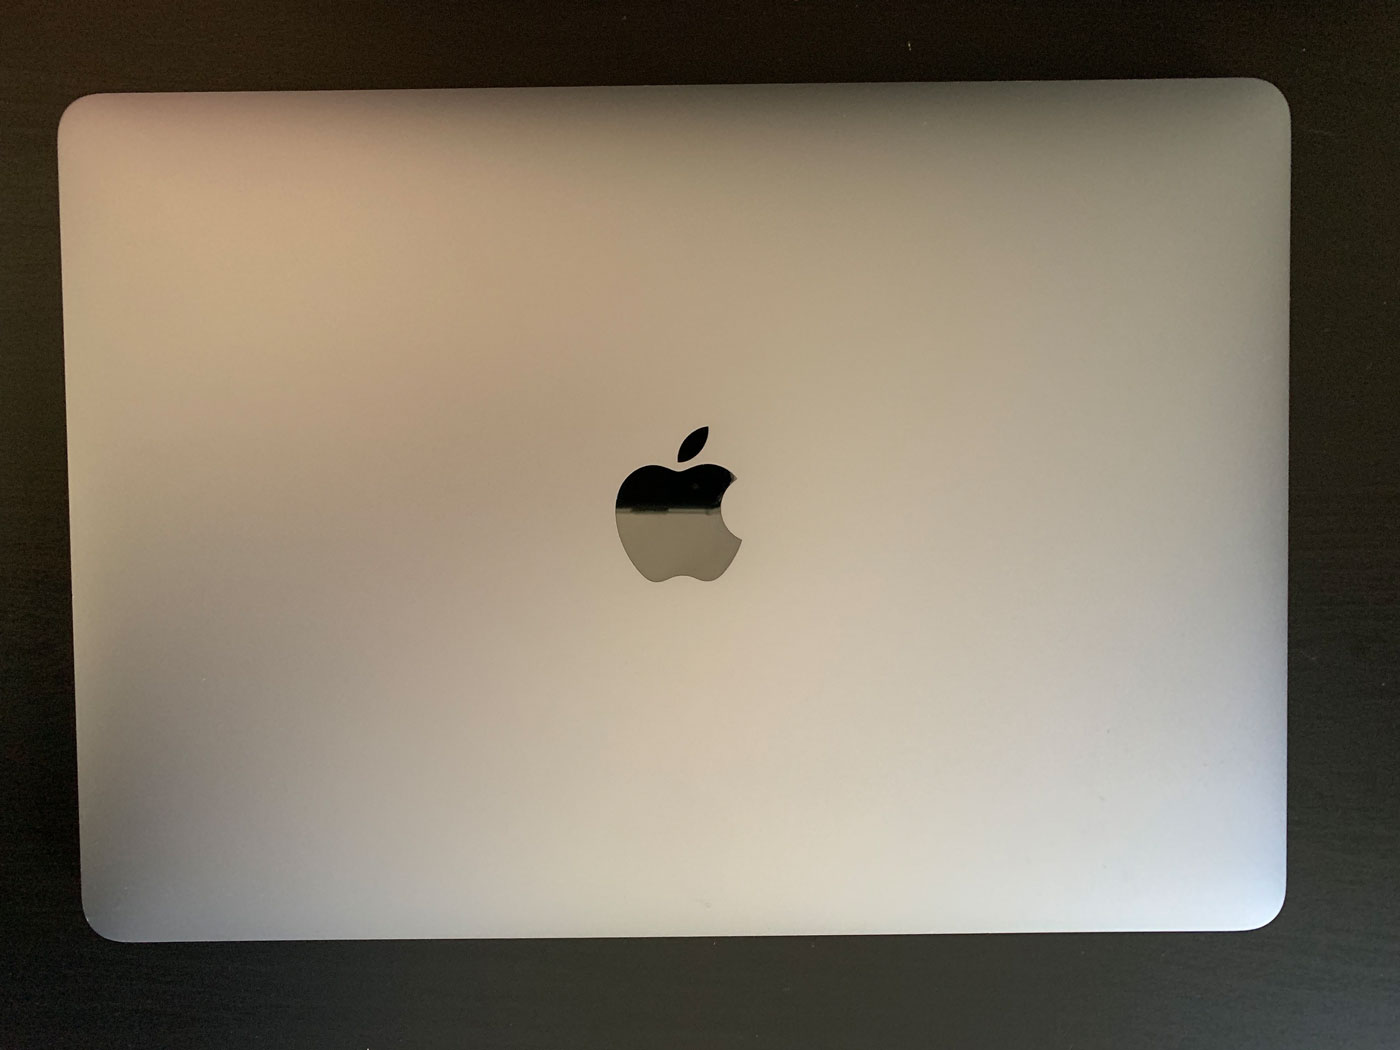 macbook-02.jpg